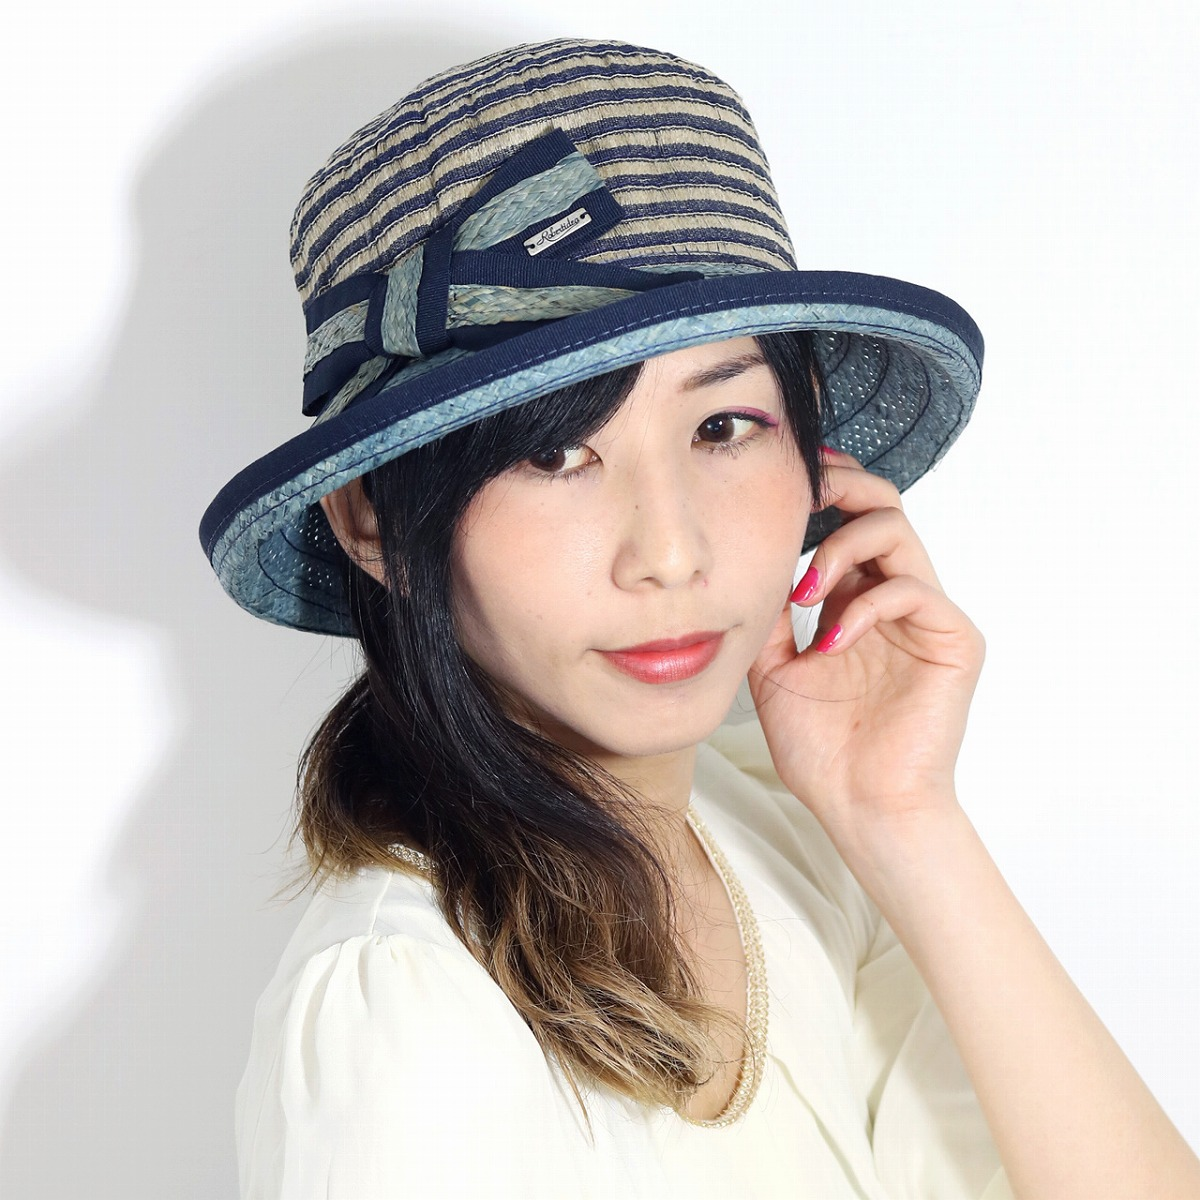 a9339b07 ELEHELM HAT STORE: Ribbon Mrs. hat dark blue navy [straw hat] [sailor hat]  Mother's Day present hat gift in the spring and summer broad-brimmed  horizontal ...